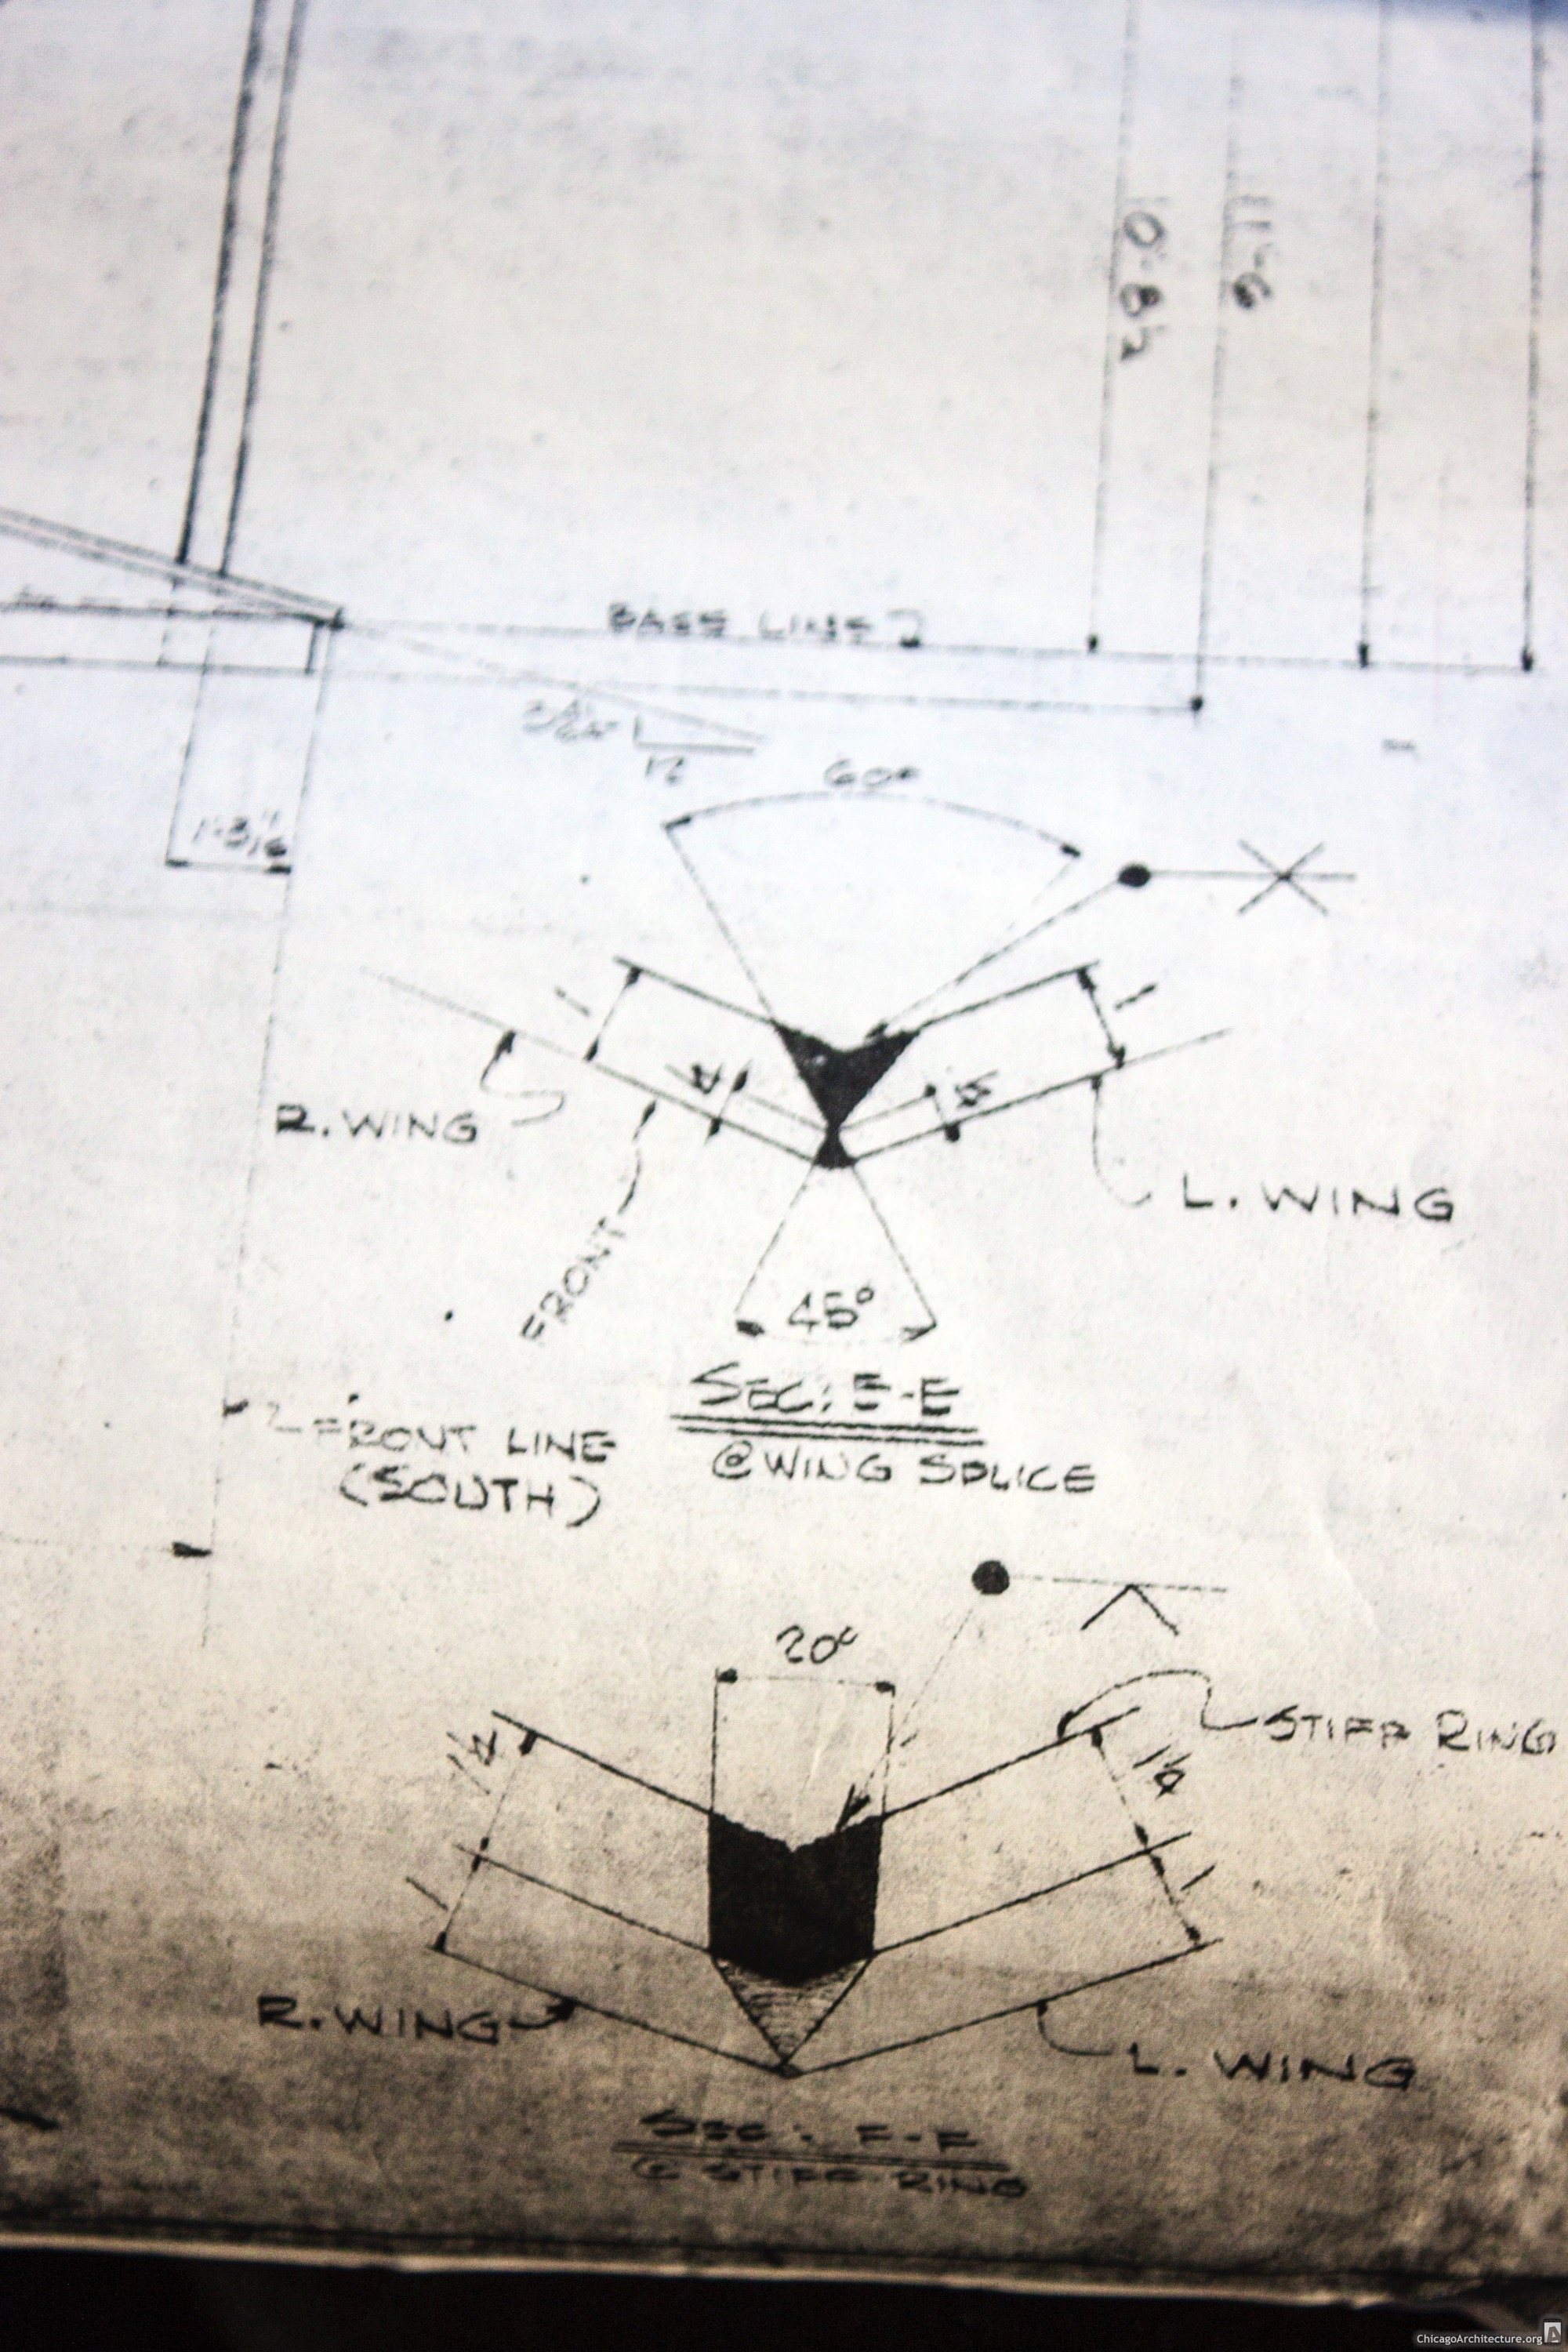 Blueprints of the untitled Picasso